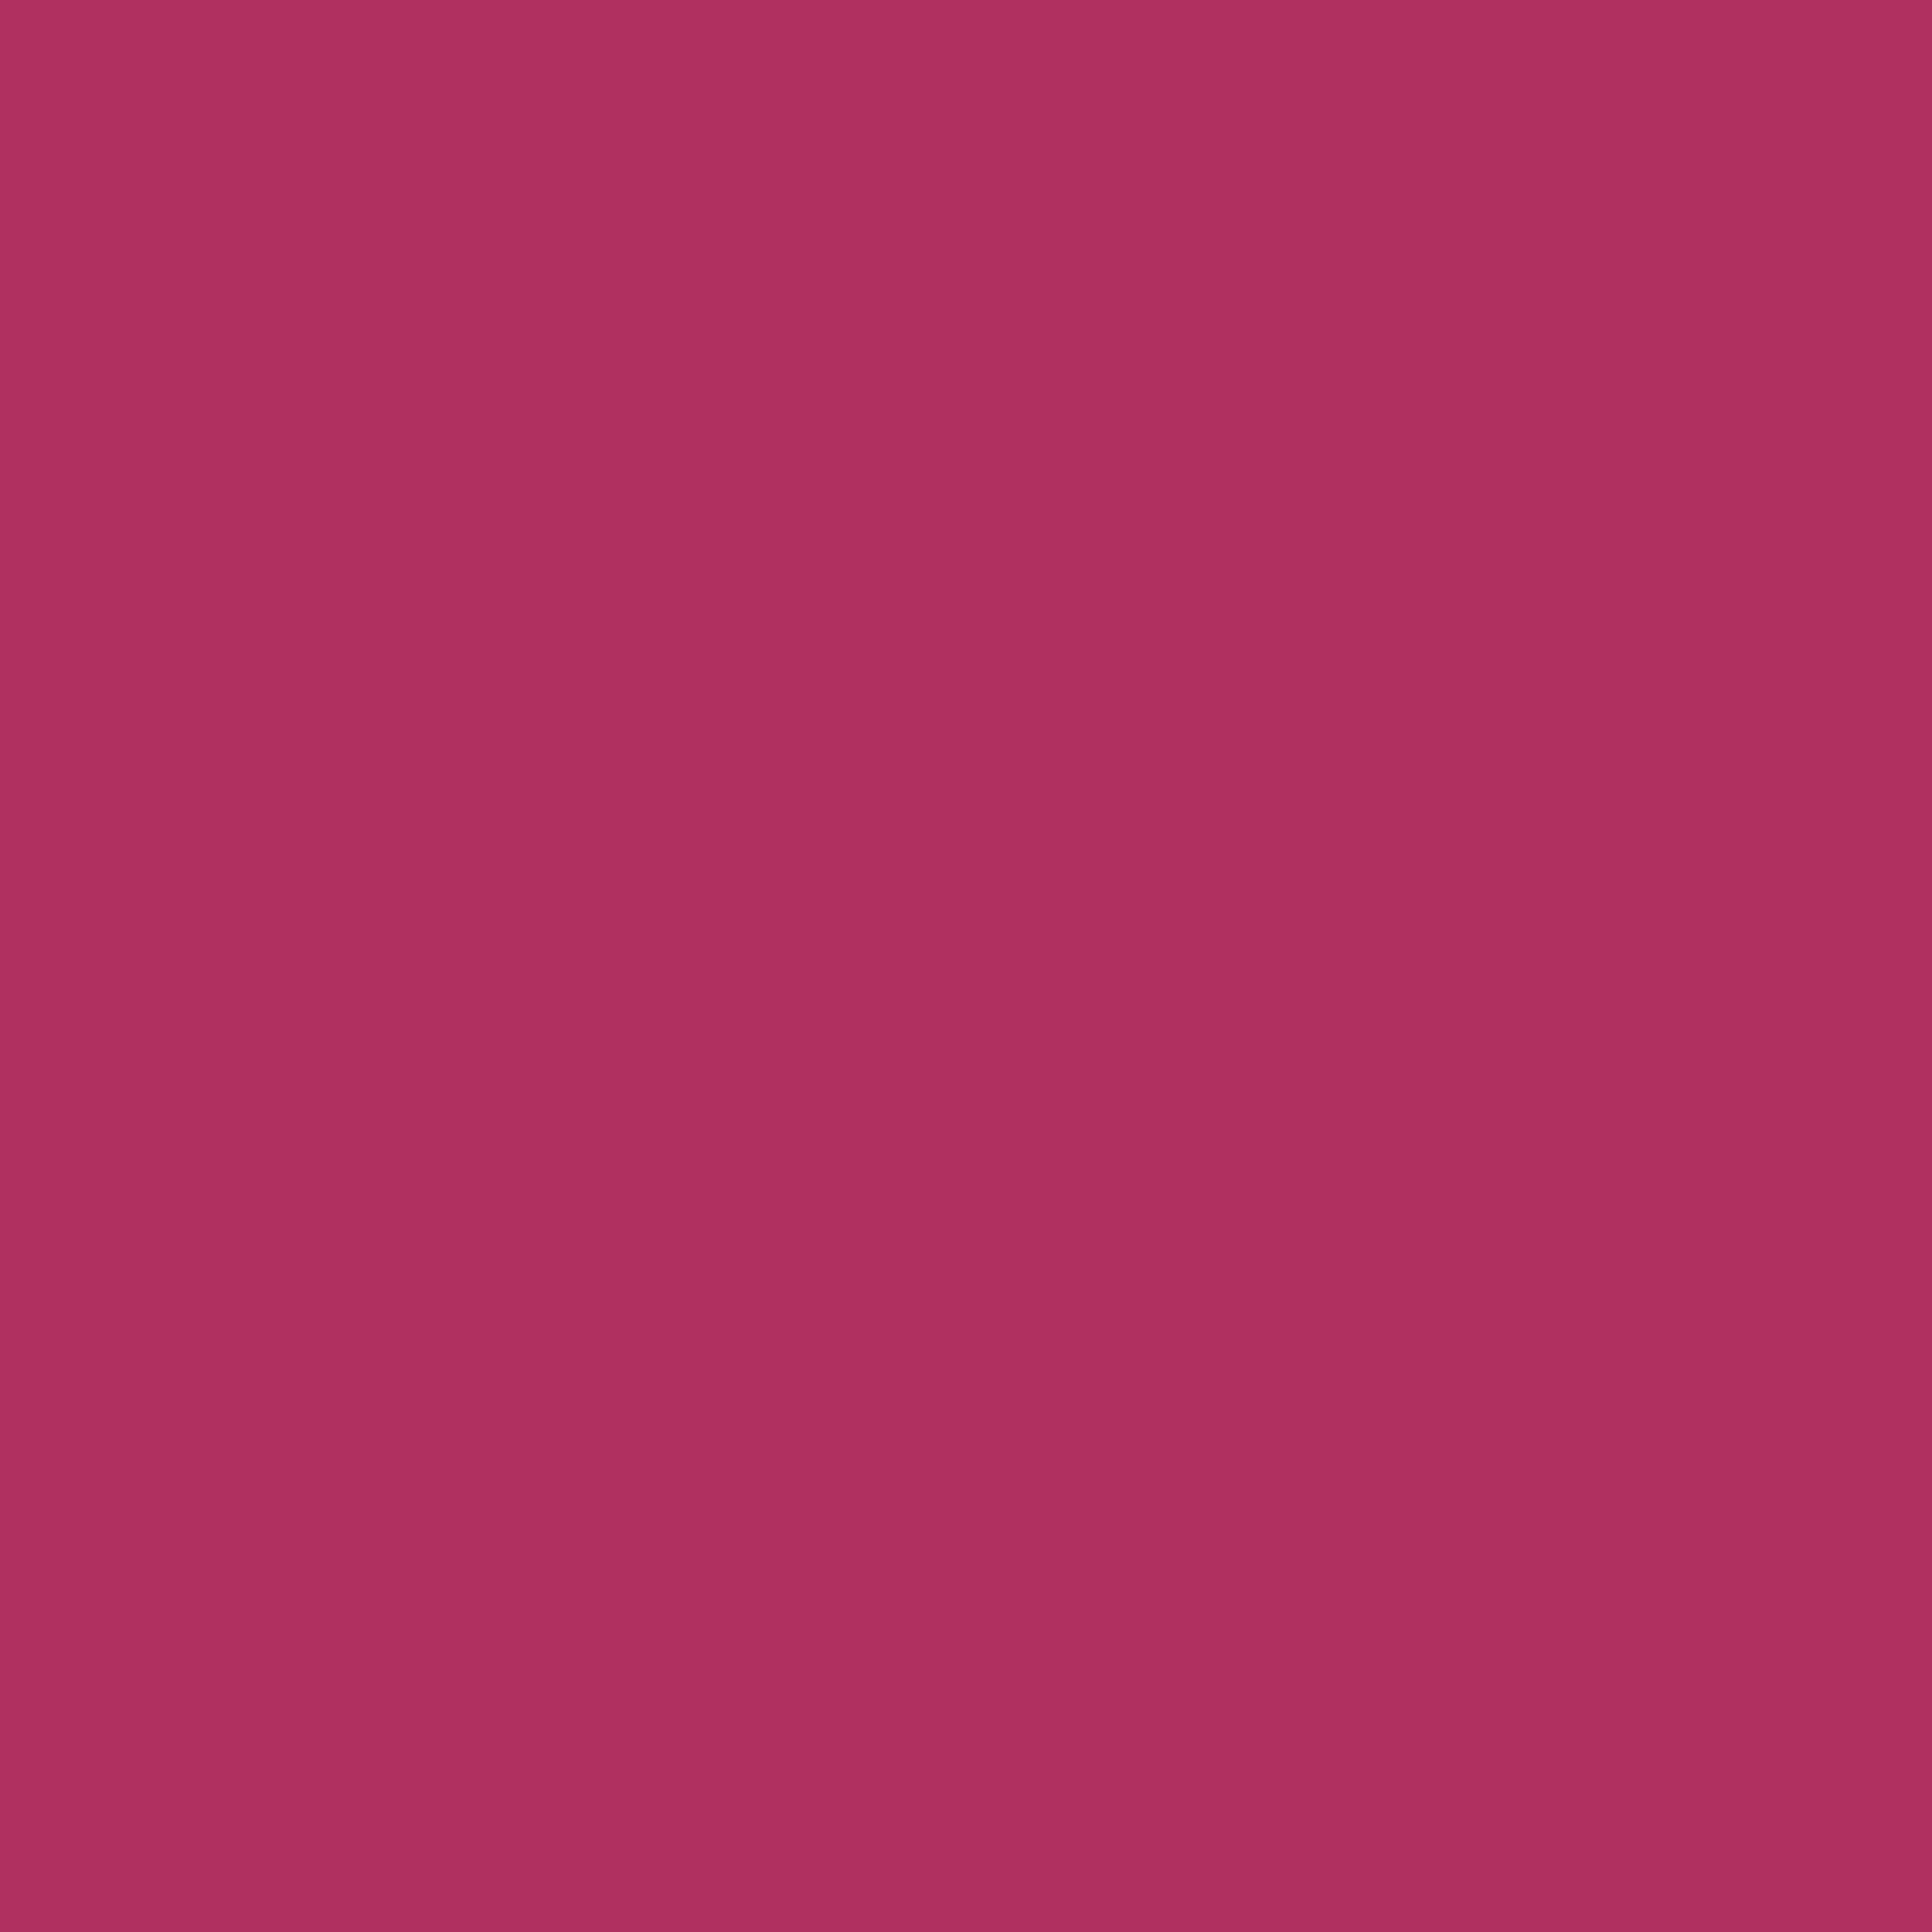 2732x2732 Maroon X11 Gui Solid Color Background